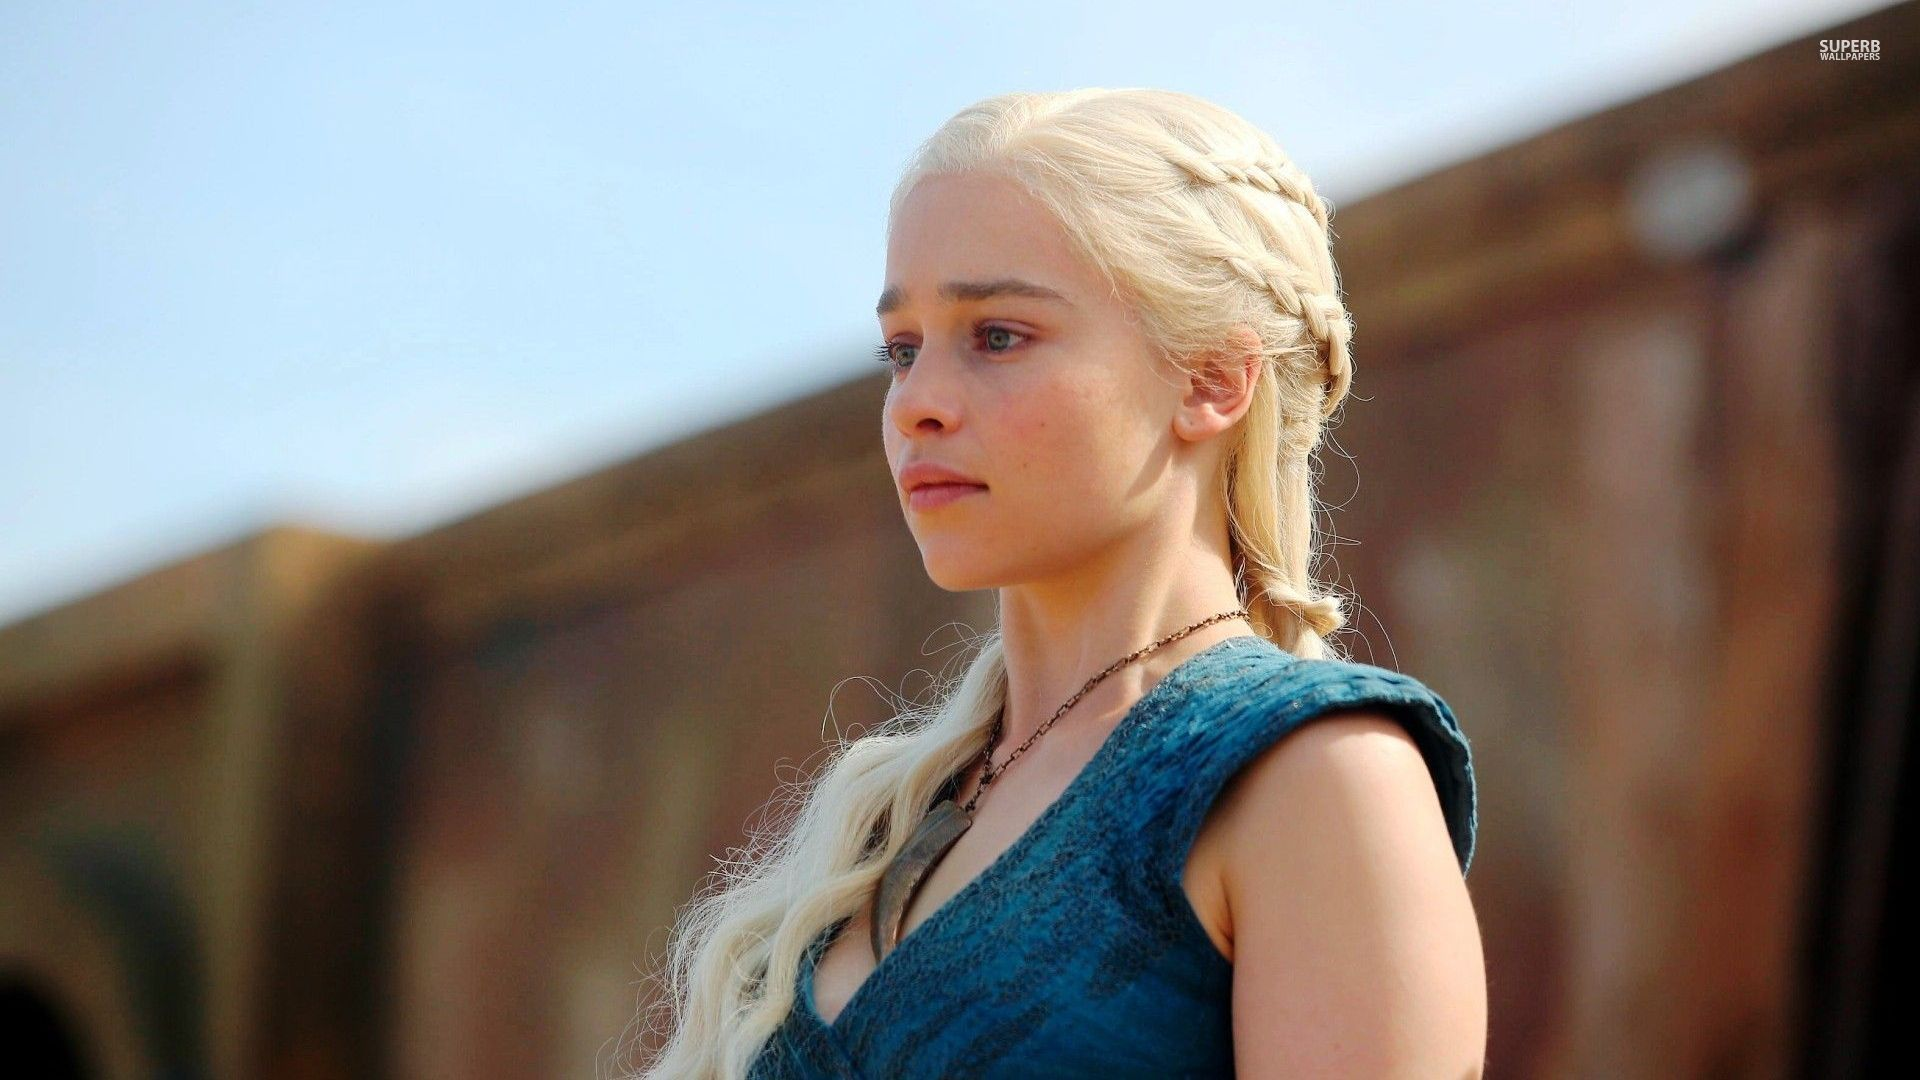 daenerys-targaryen-game-of-thrones-29855-1920x1080